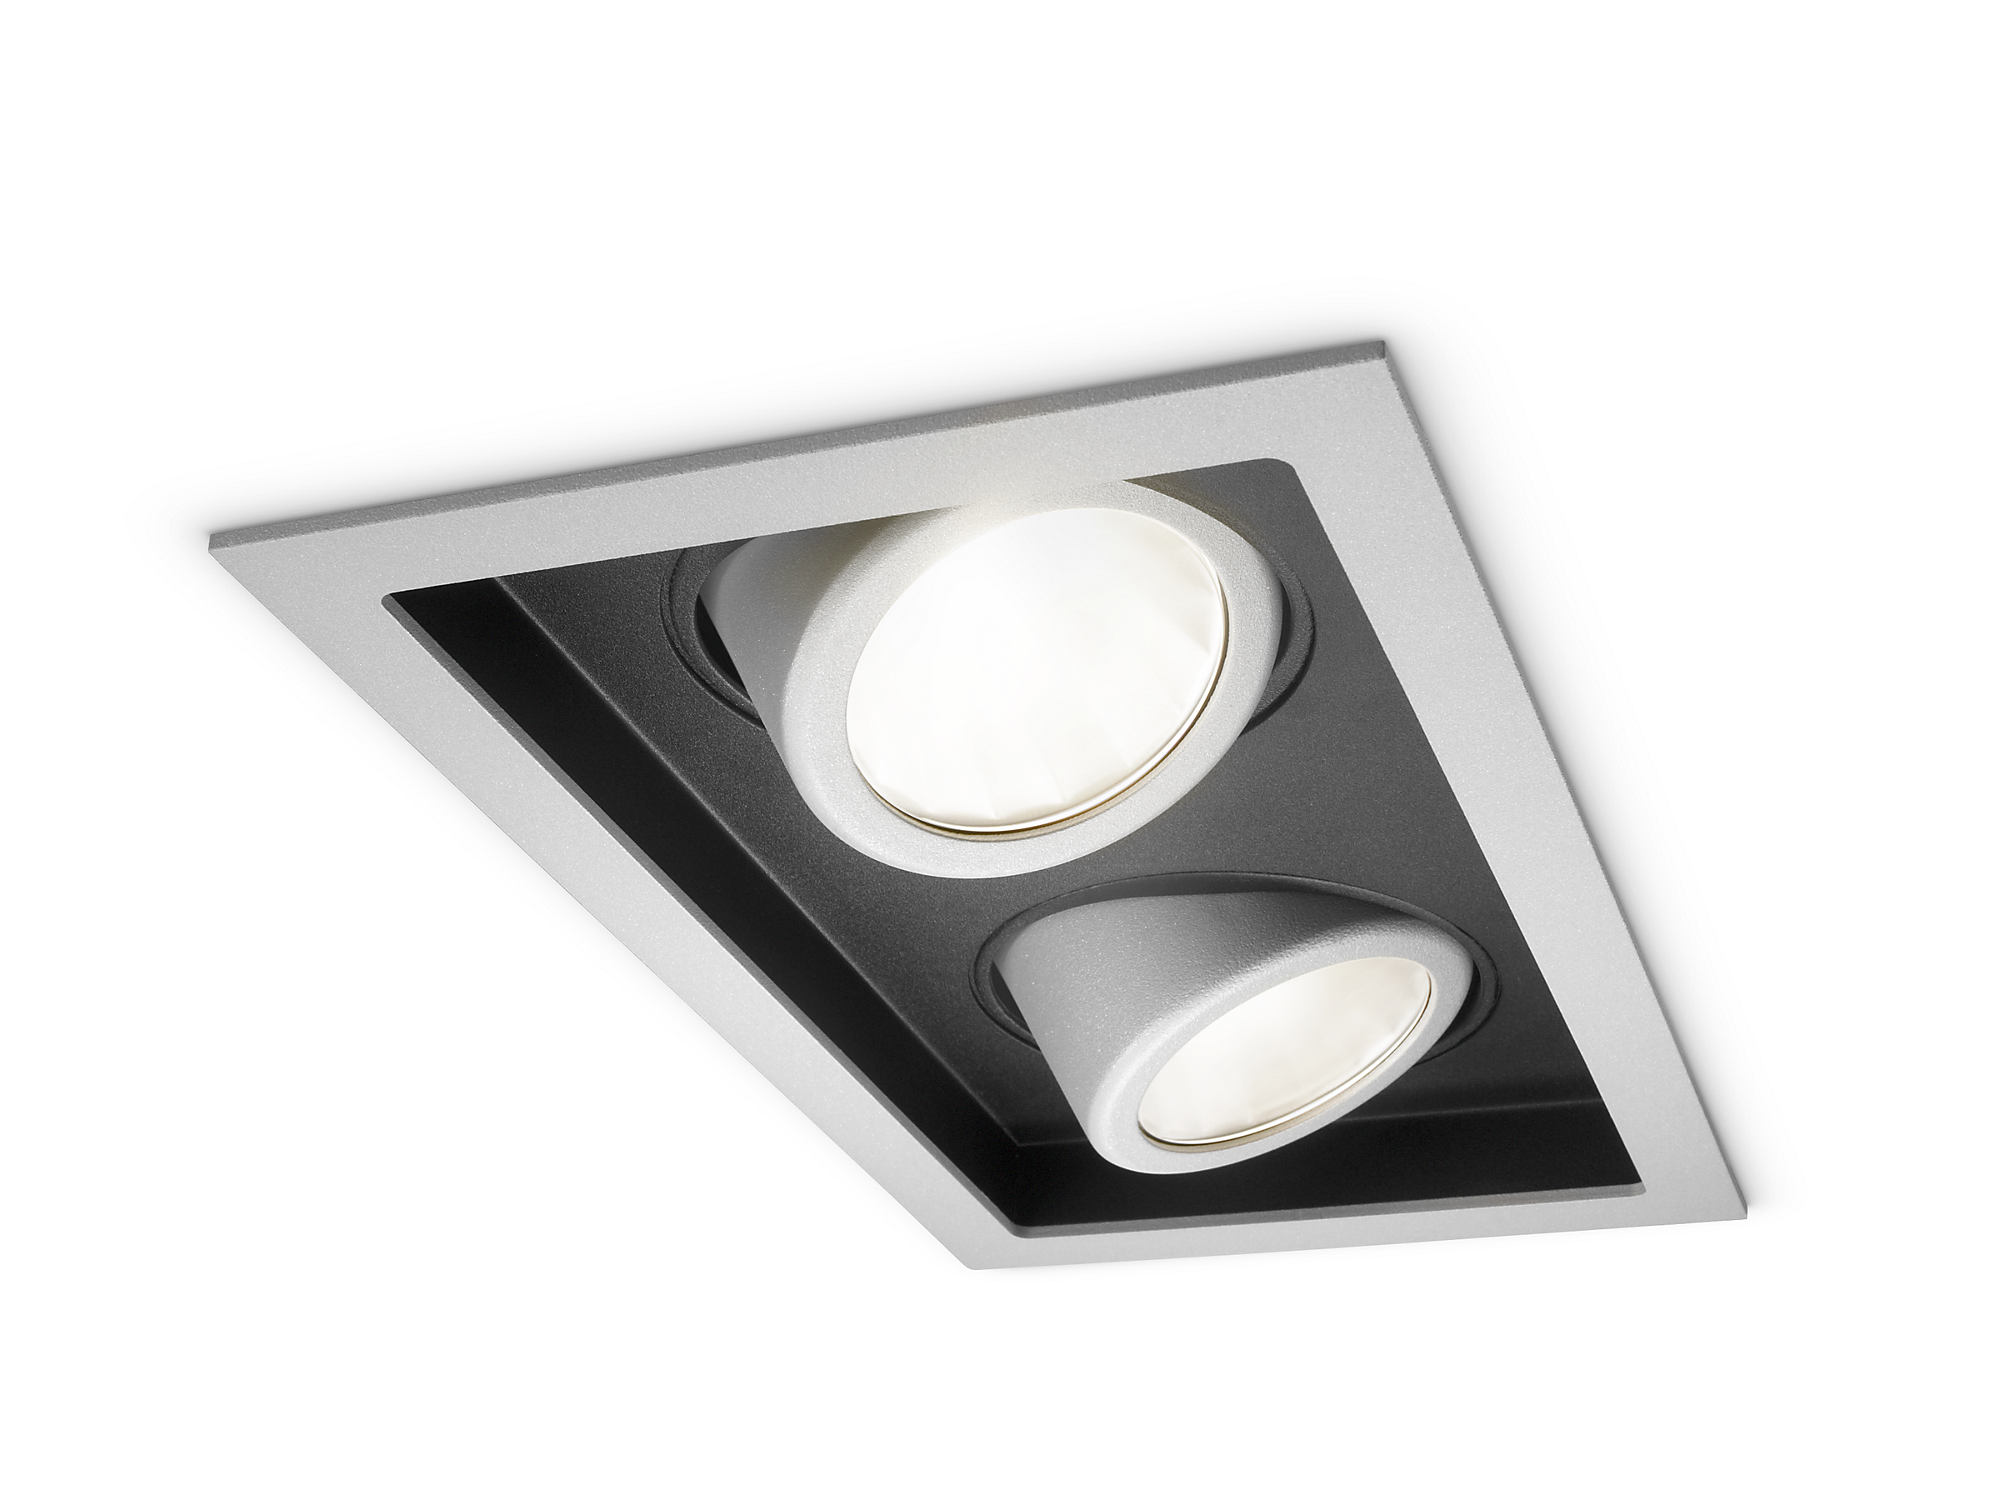 Philips Lighting Storeflux Rim By Philips Lighting Signify Archello